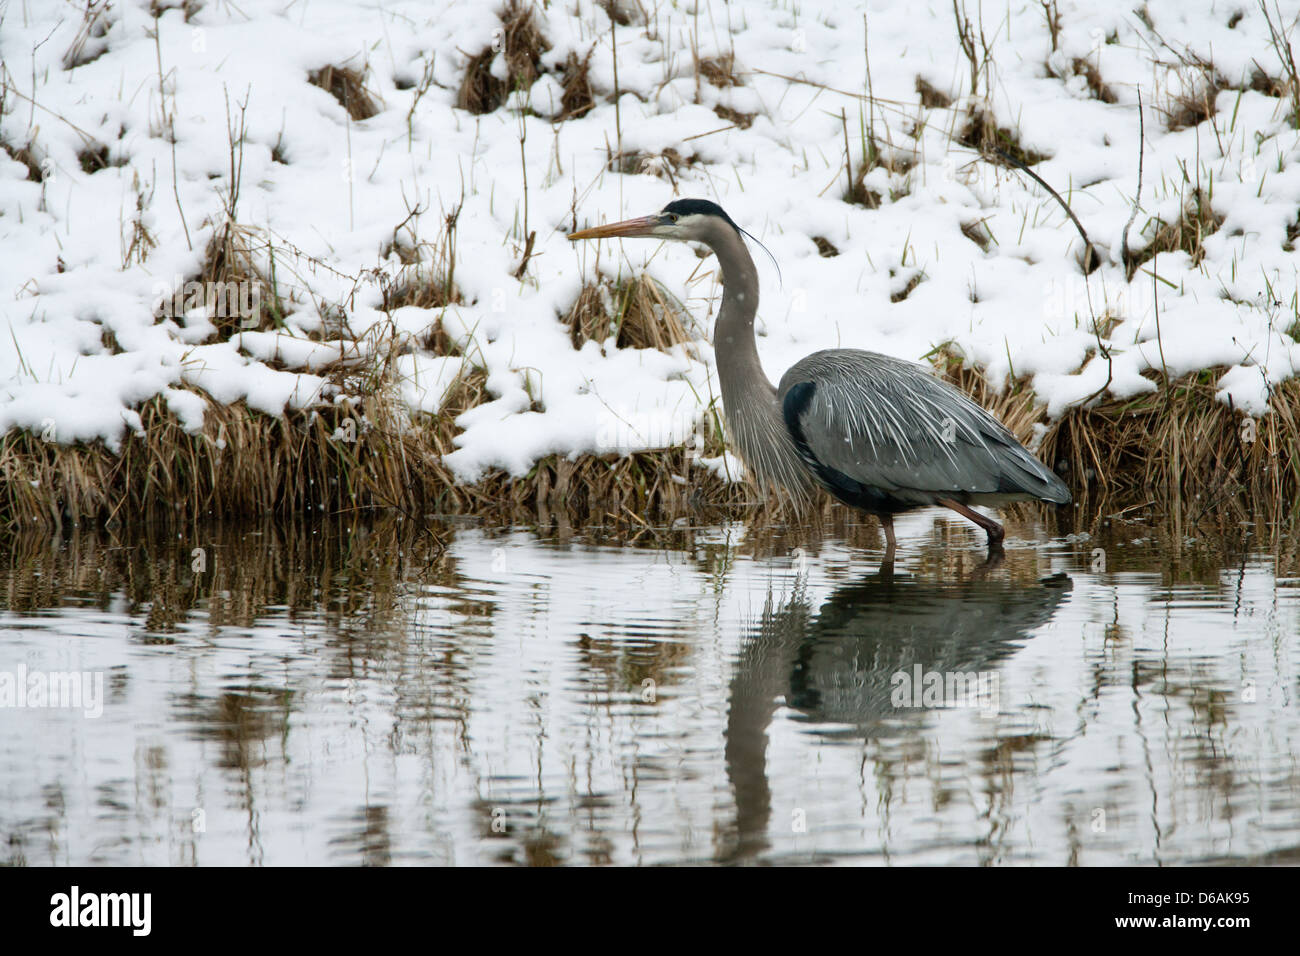 Great Blue Heron in Snow - Stock Image